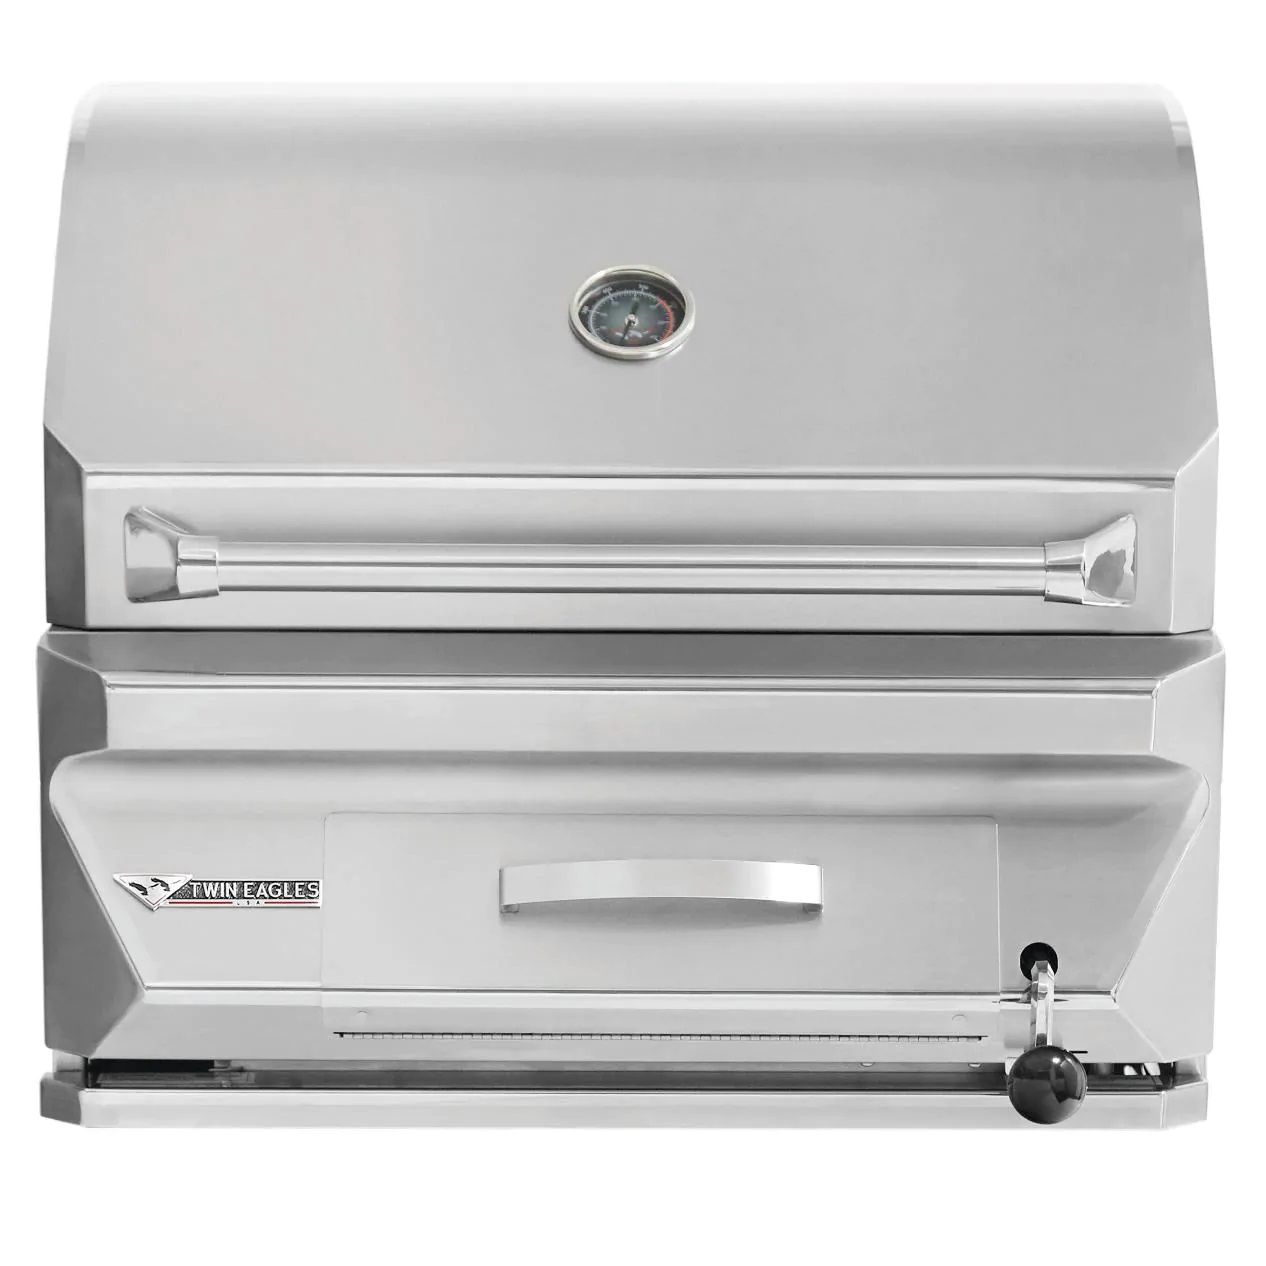 Twin Eagles 30-Inch Built-In Stainless Steel Charcoal Grill - Best Built In Charcoal Grills